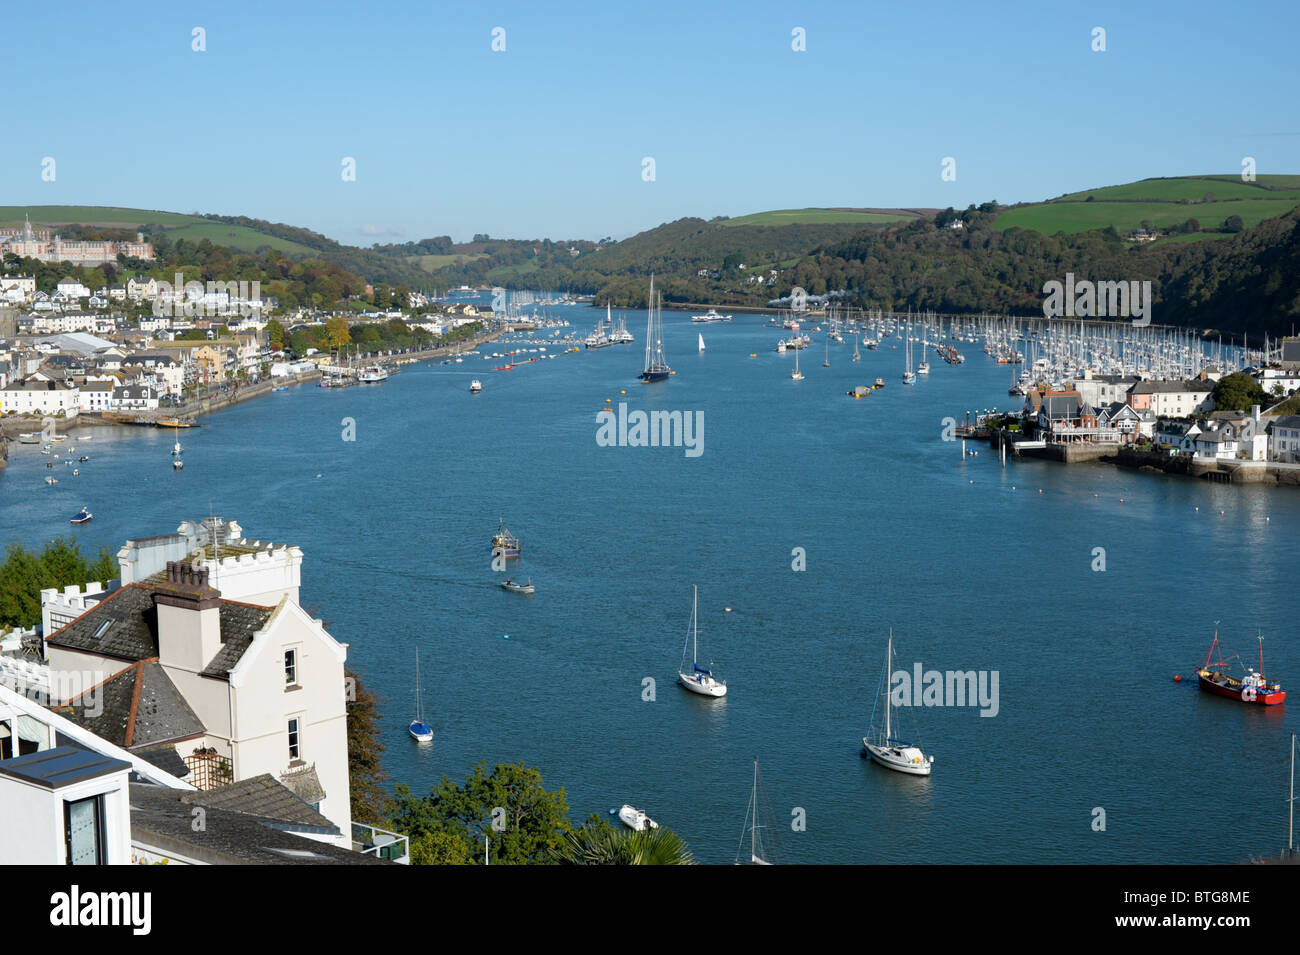 View from above looking up the River Dart dotted with sailing boats with clear blue skies and the Royal Naval College - Stock Image